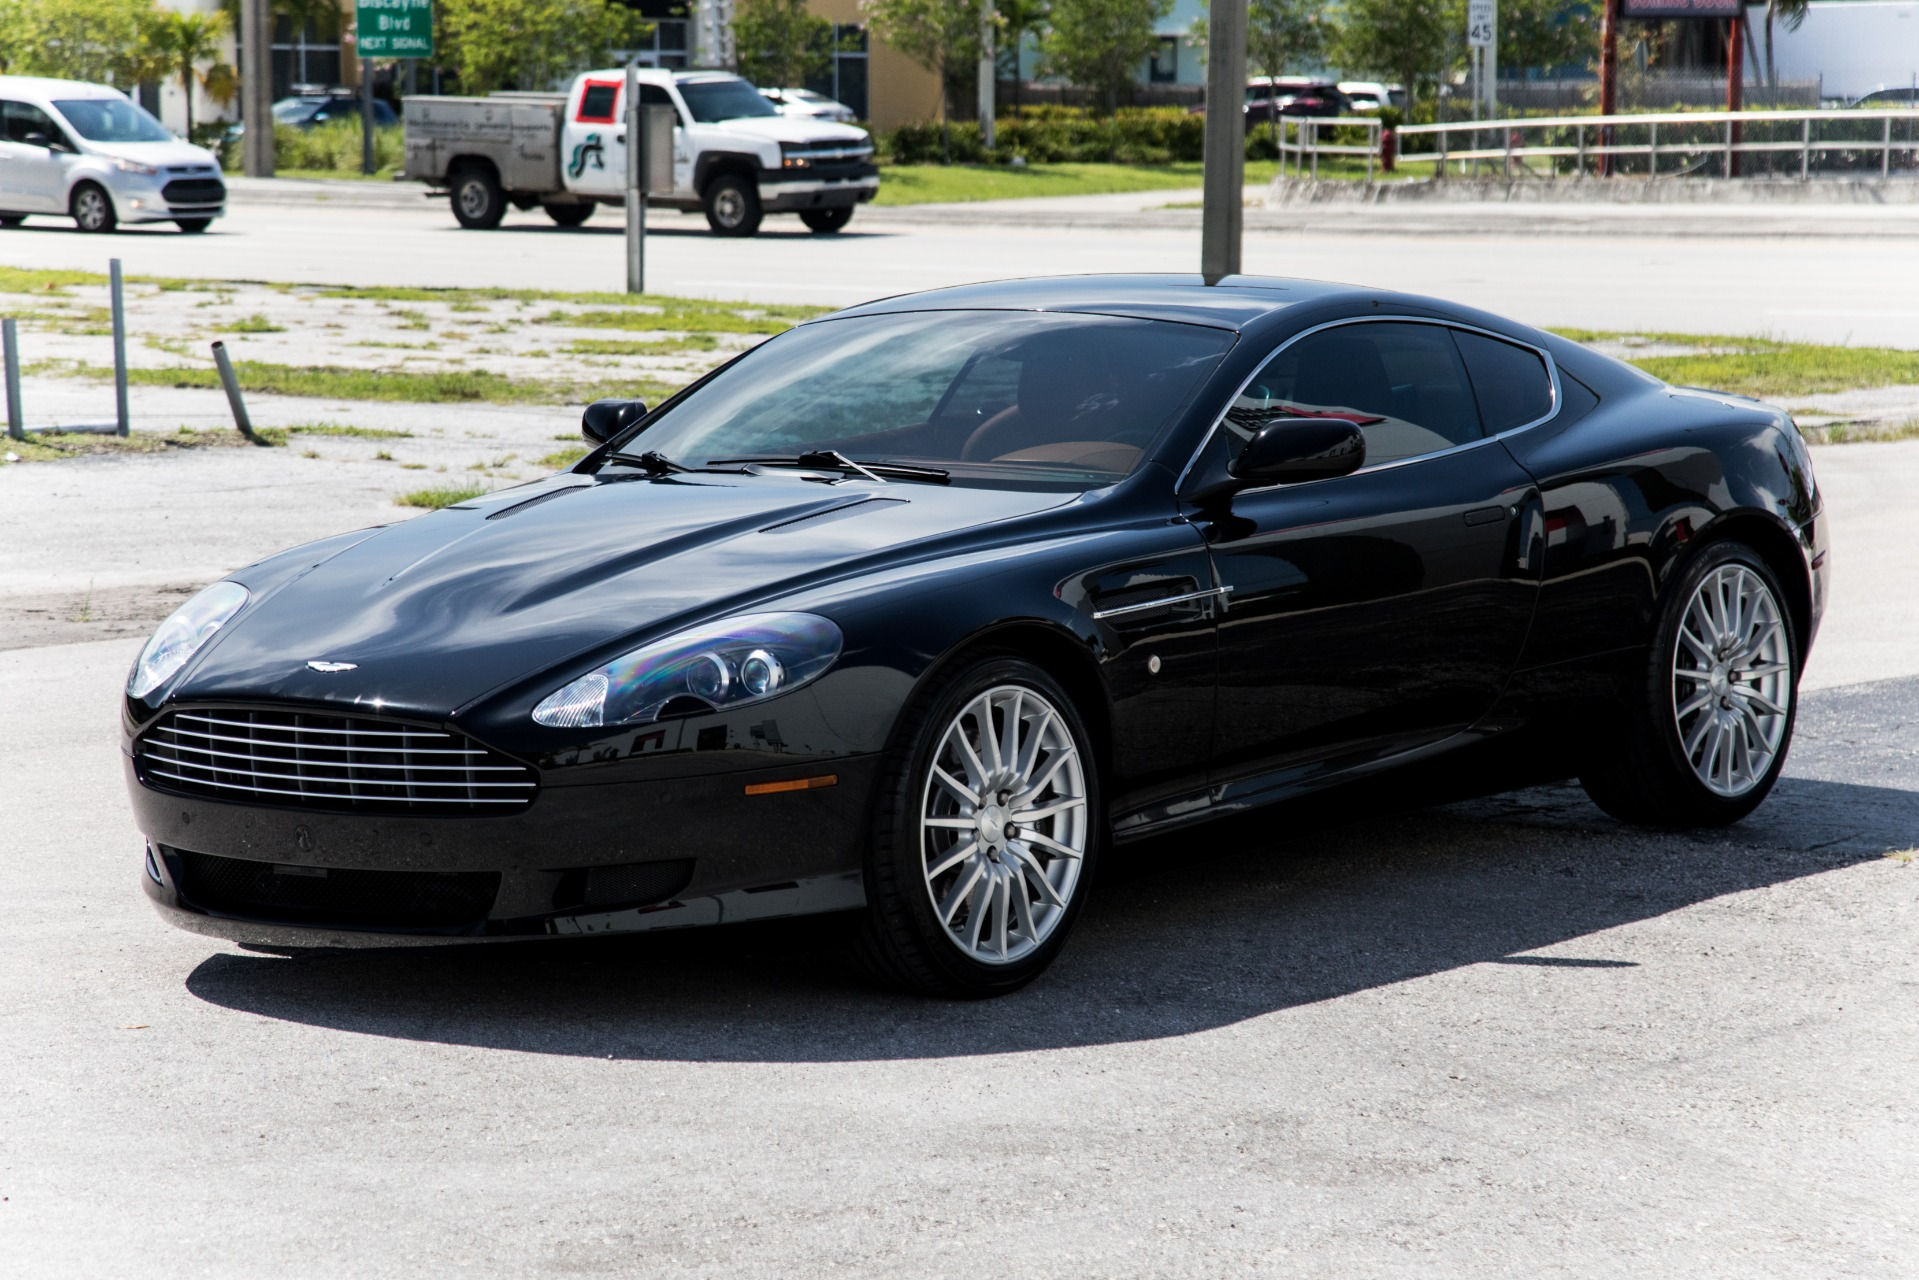 Used-2008-Aston-Martin-DB9